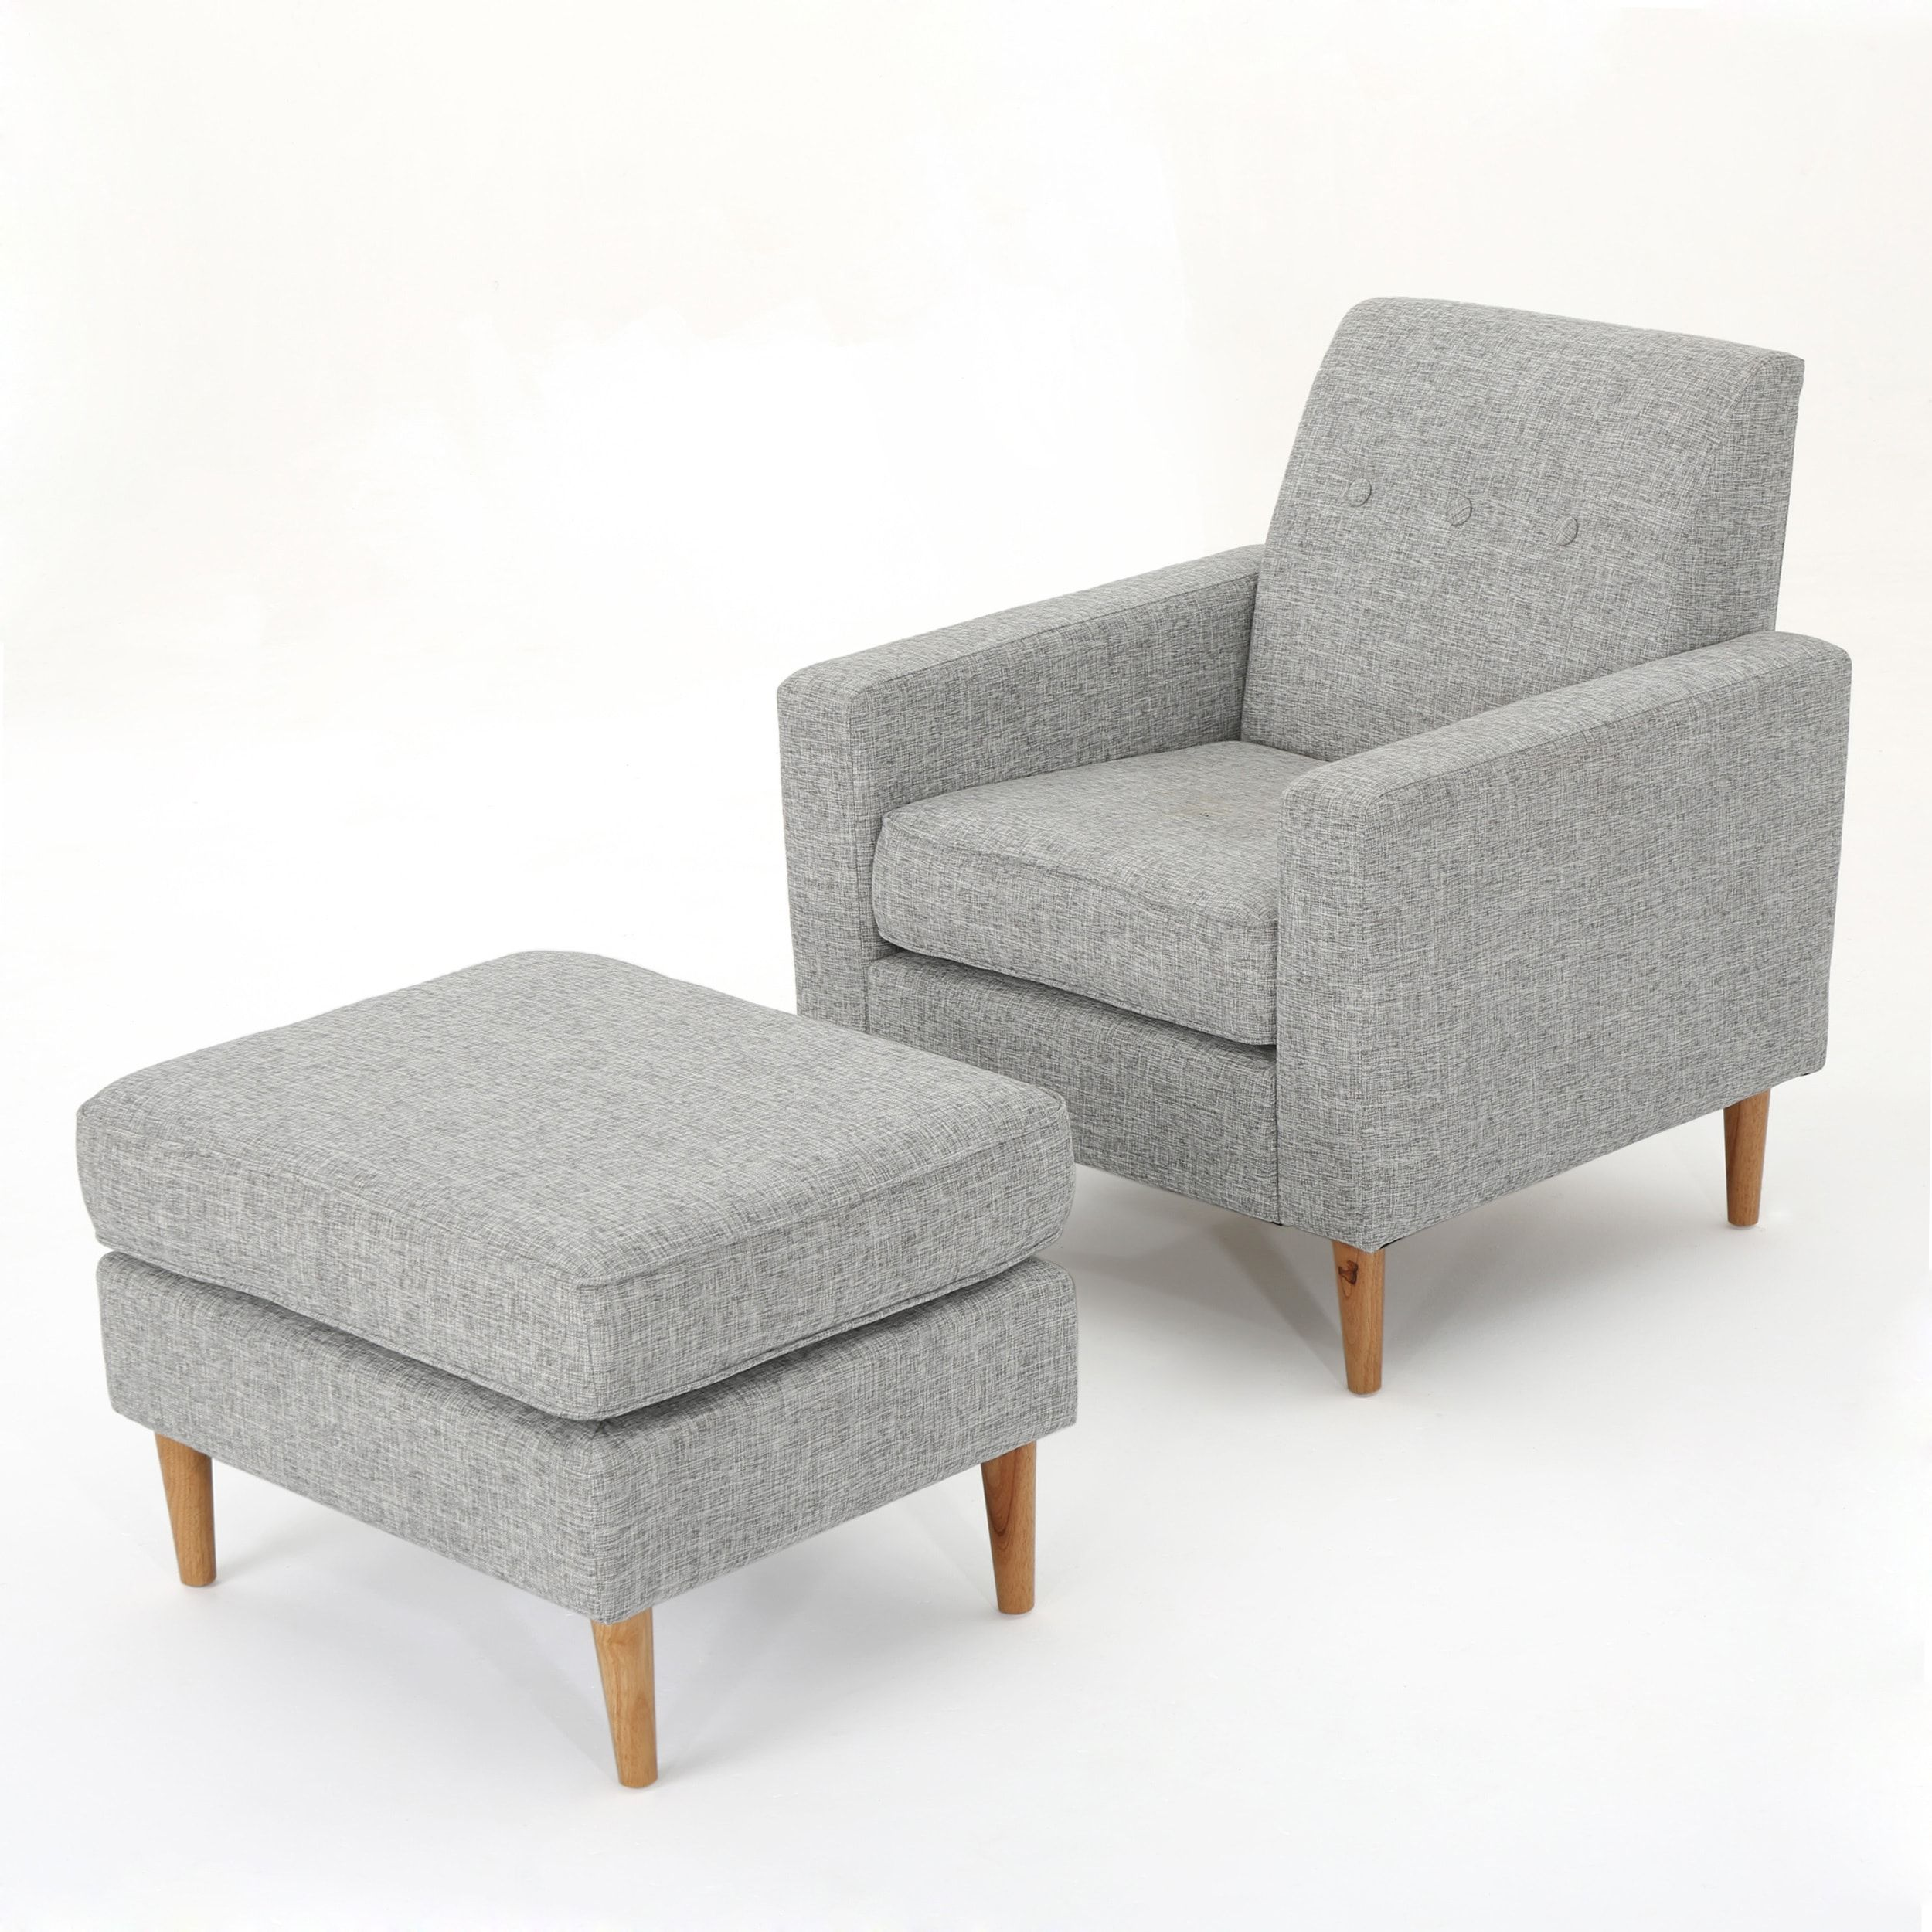 Cozy Chairs   Mid Century Modern Chair And Ottoman Set